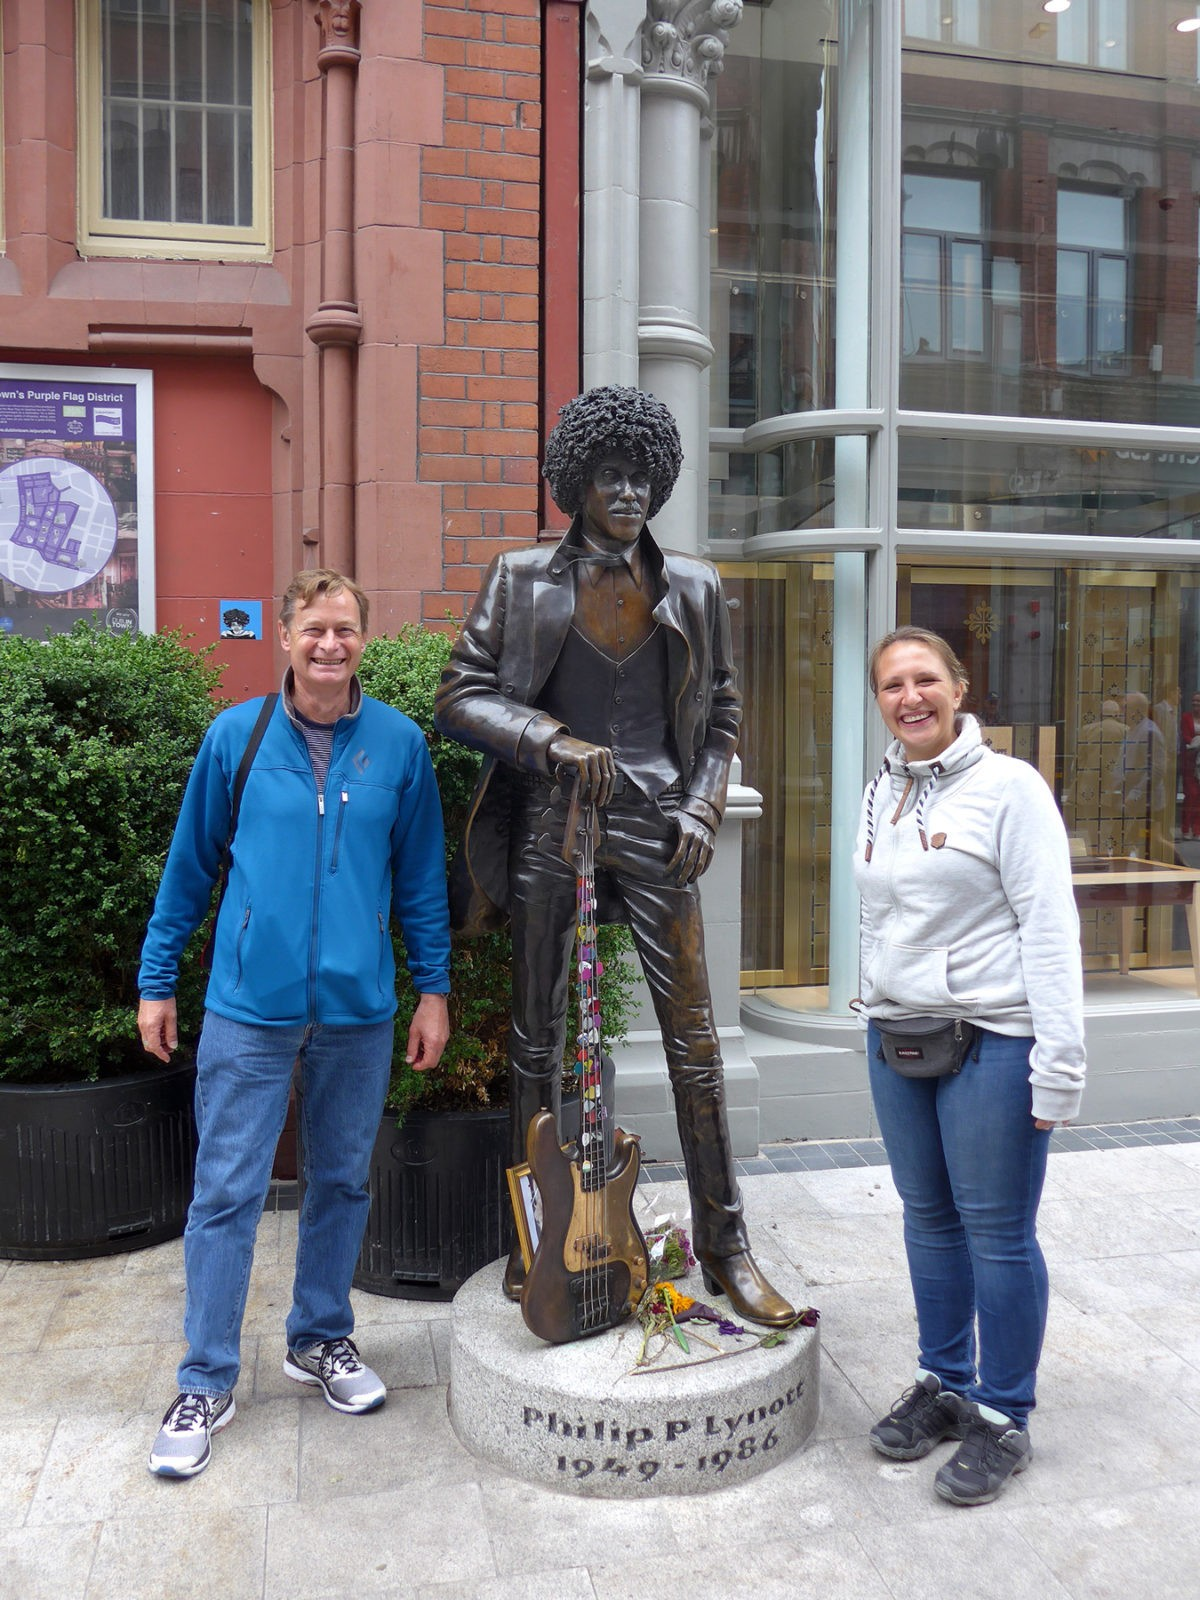 Phil Lynott in Dublin